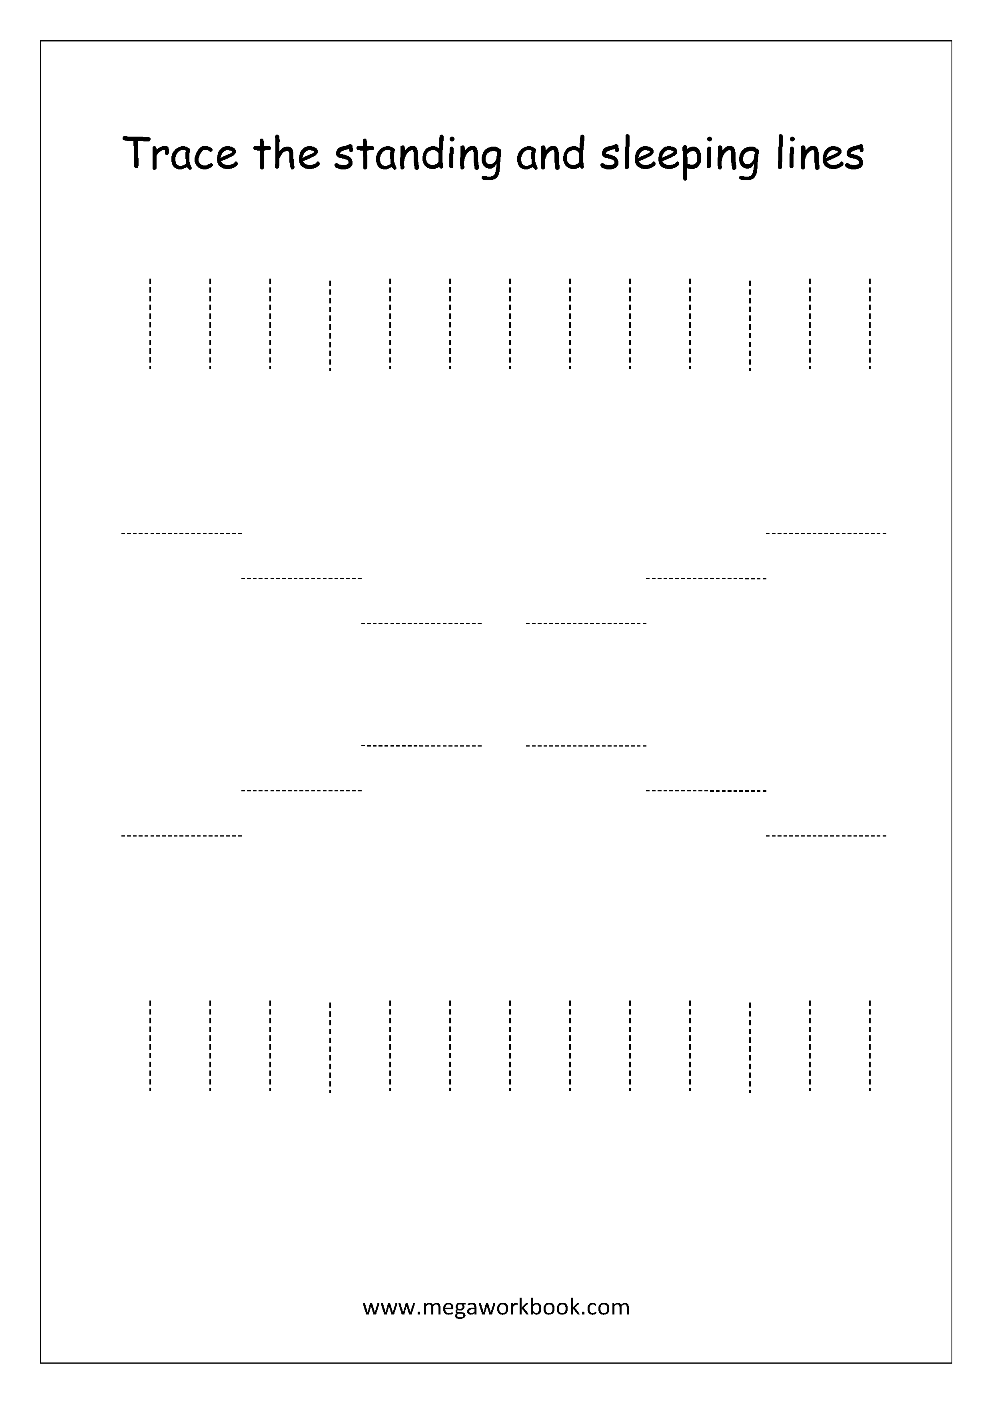 Free Shapes Worksheets - Line And Curve Tracing - MegaWorkbook